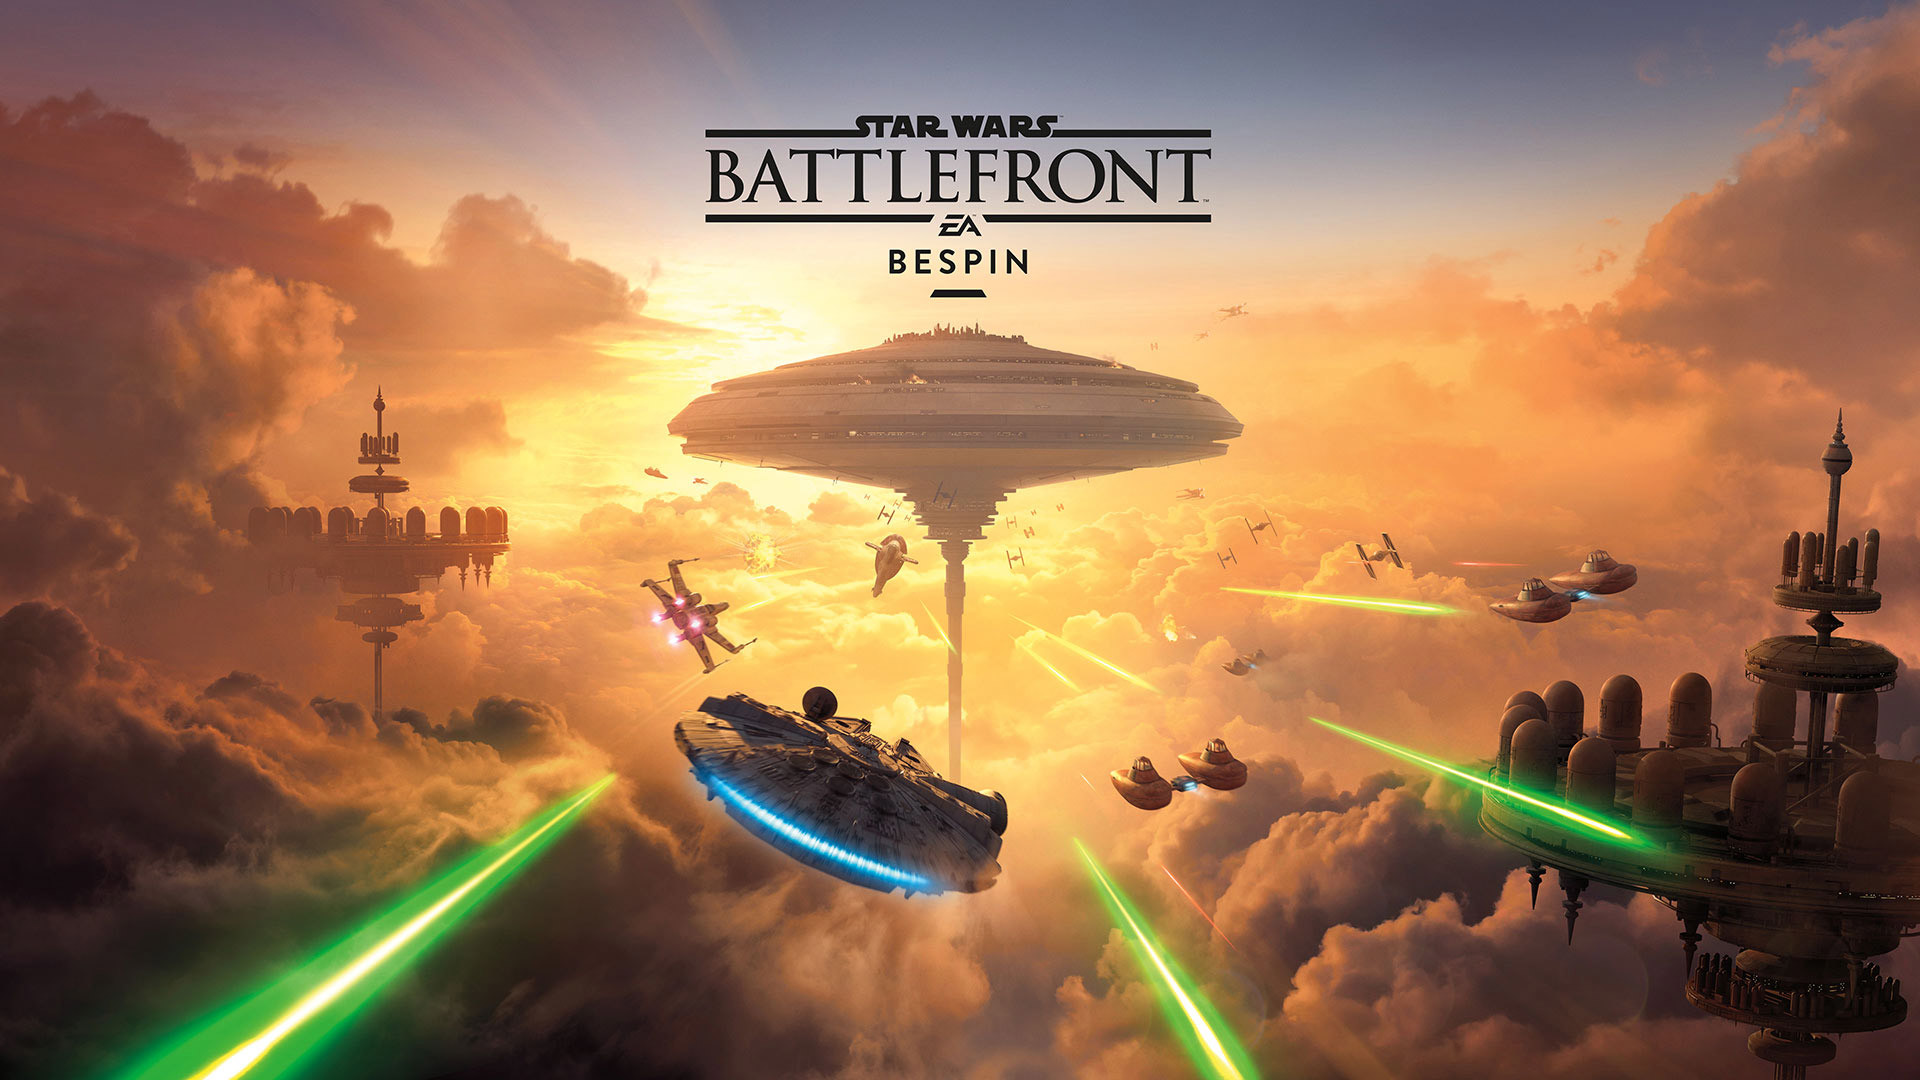 Star Wars Battlefront 1920x1080 Wallpaper 81 Images